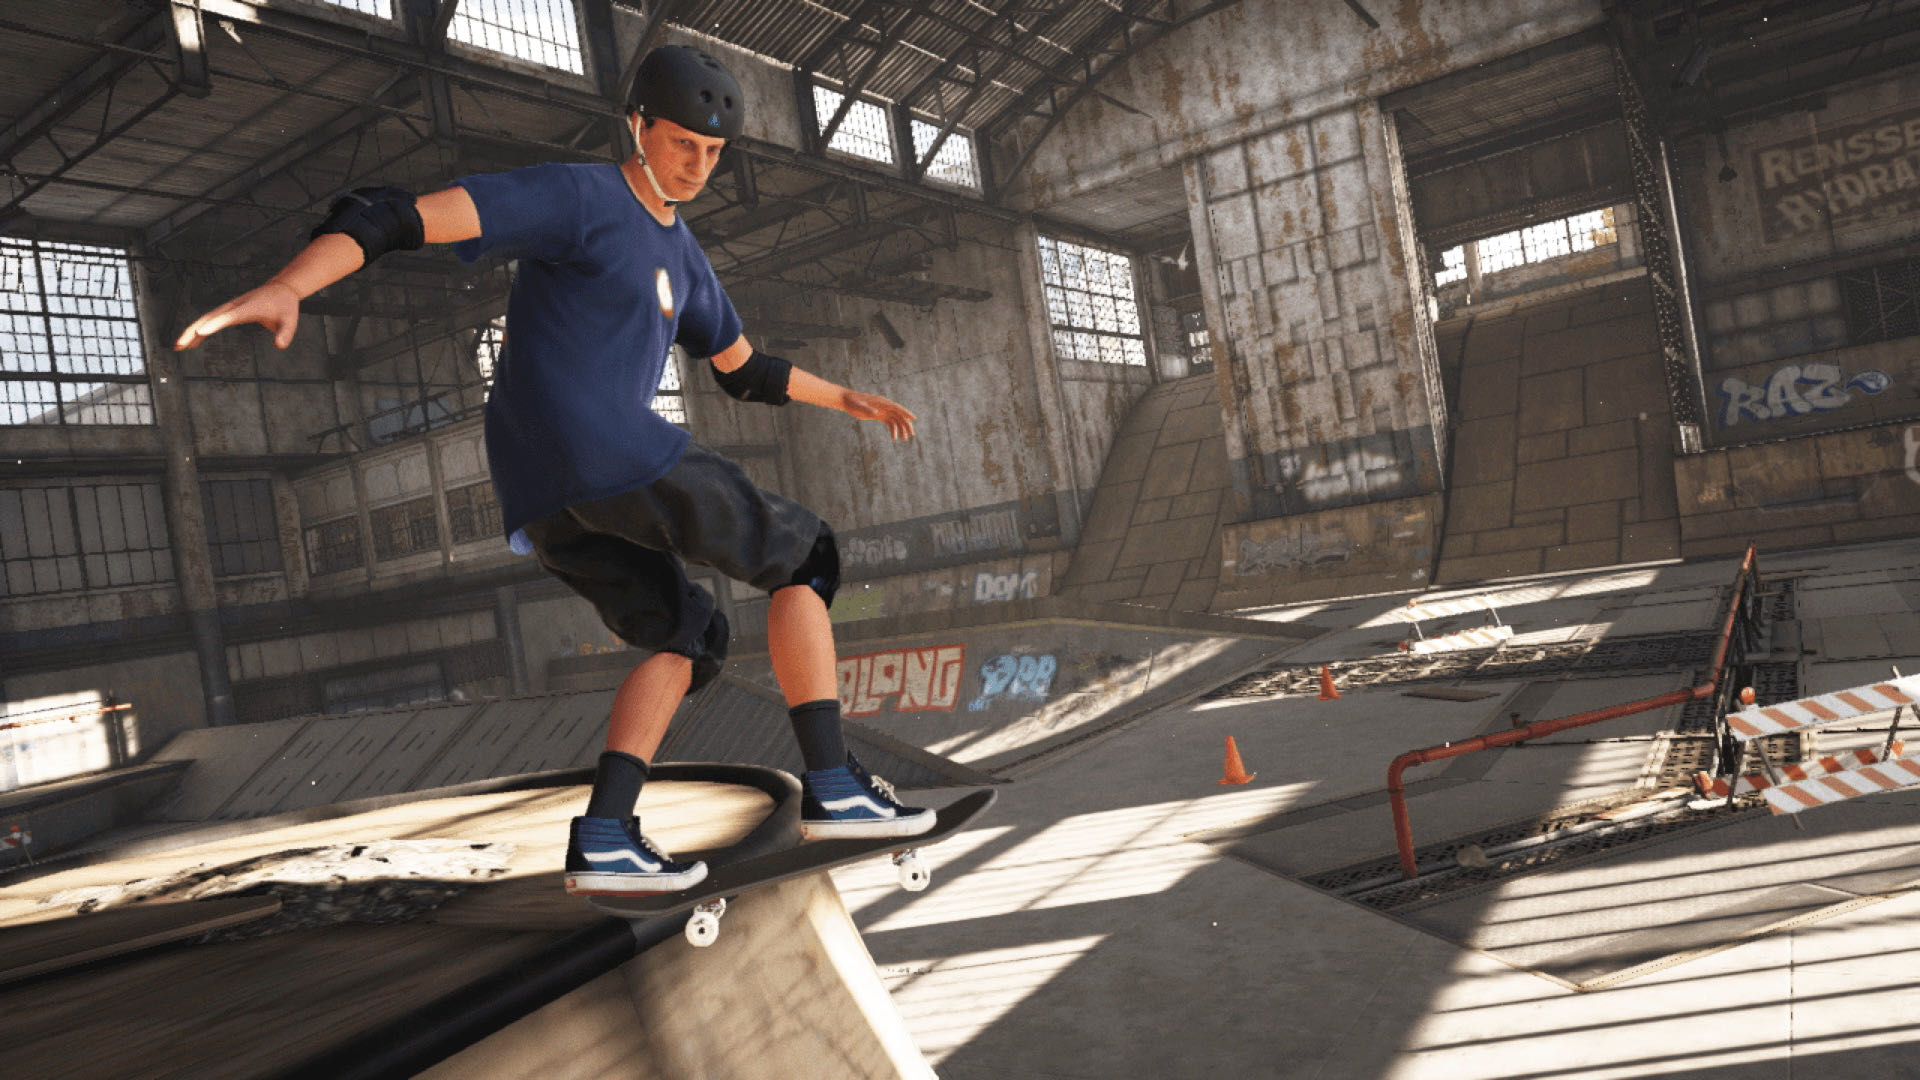 A close-up of Tony Hawk in THPS, performing a lip trick on a quarter pipe in The Warehouse.